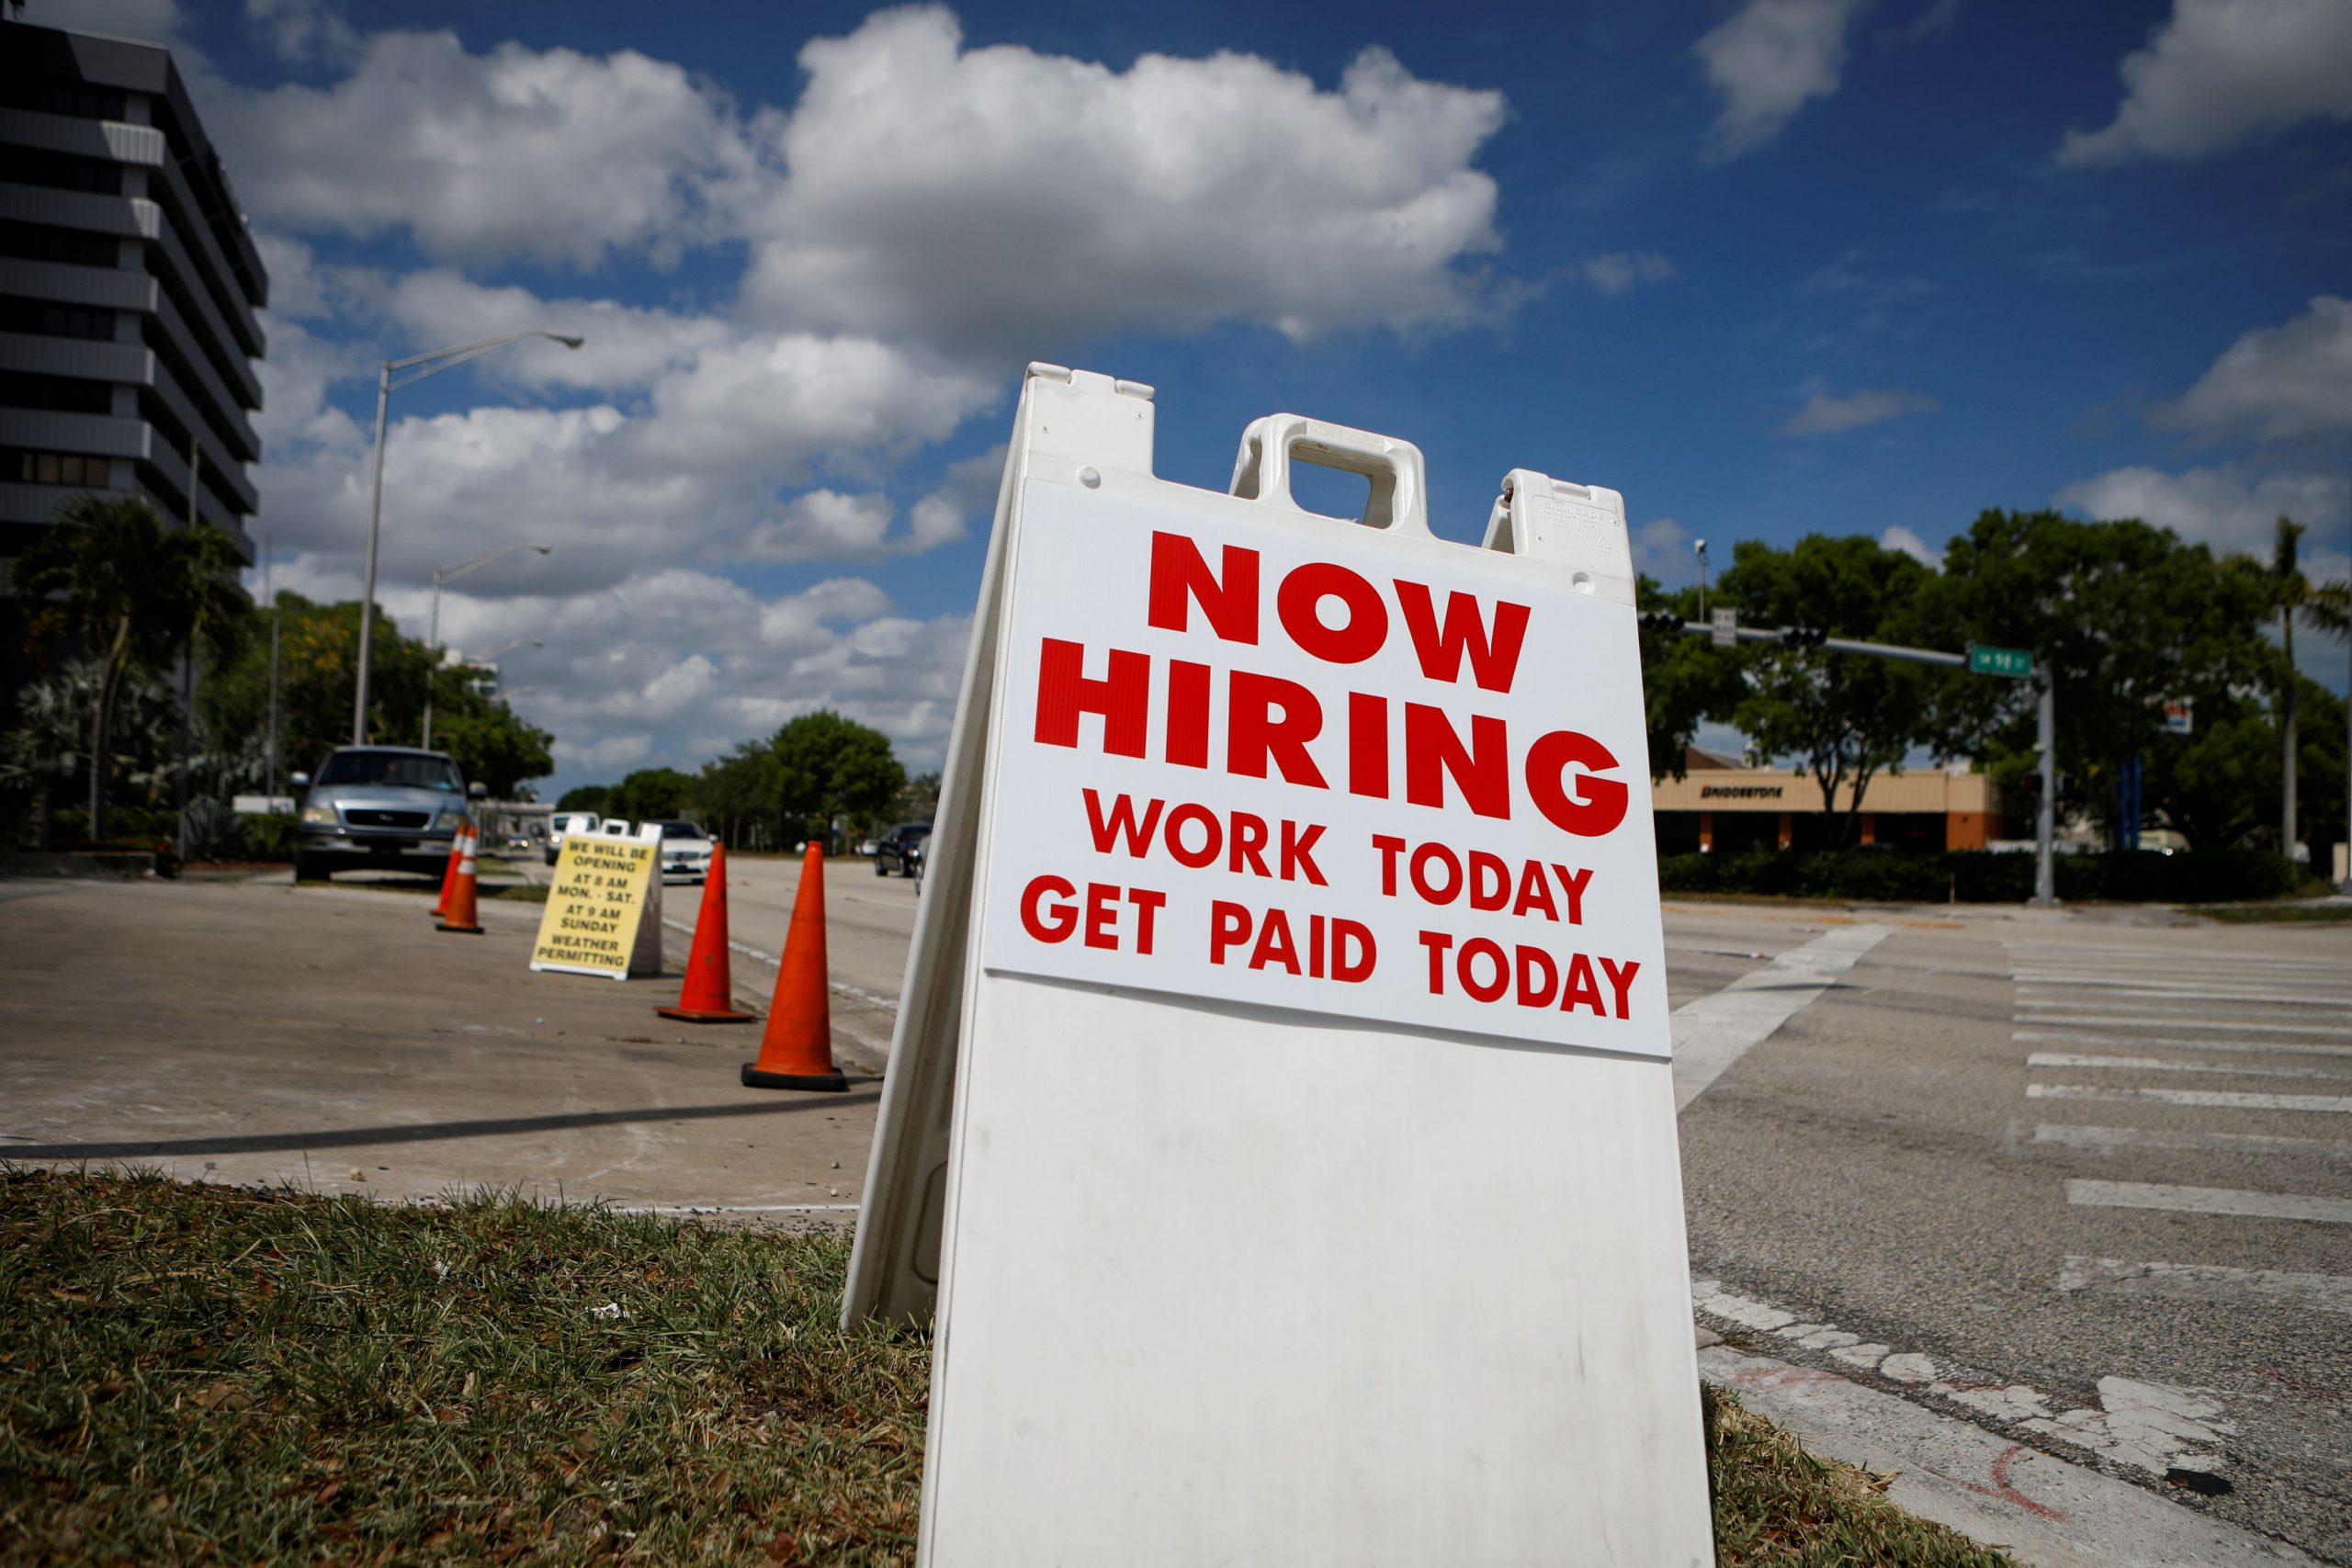 U.S. private sector adds fewer-than-expected jobs in August